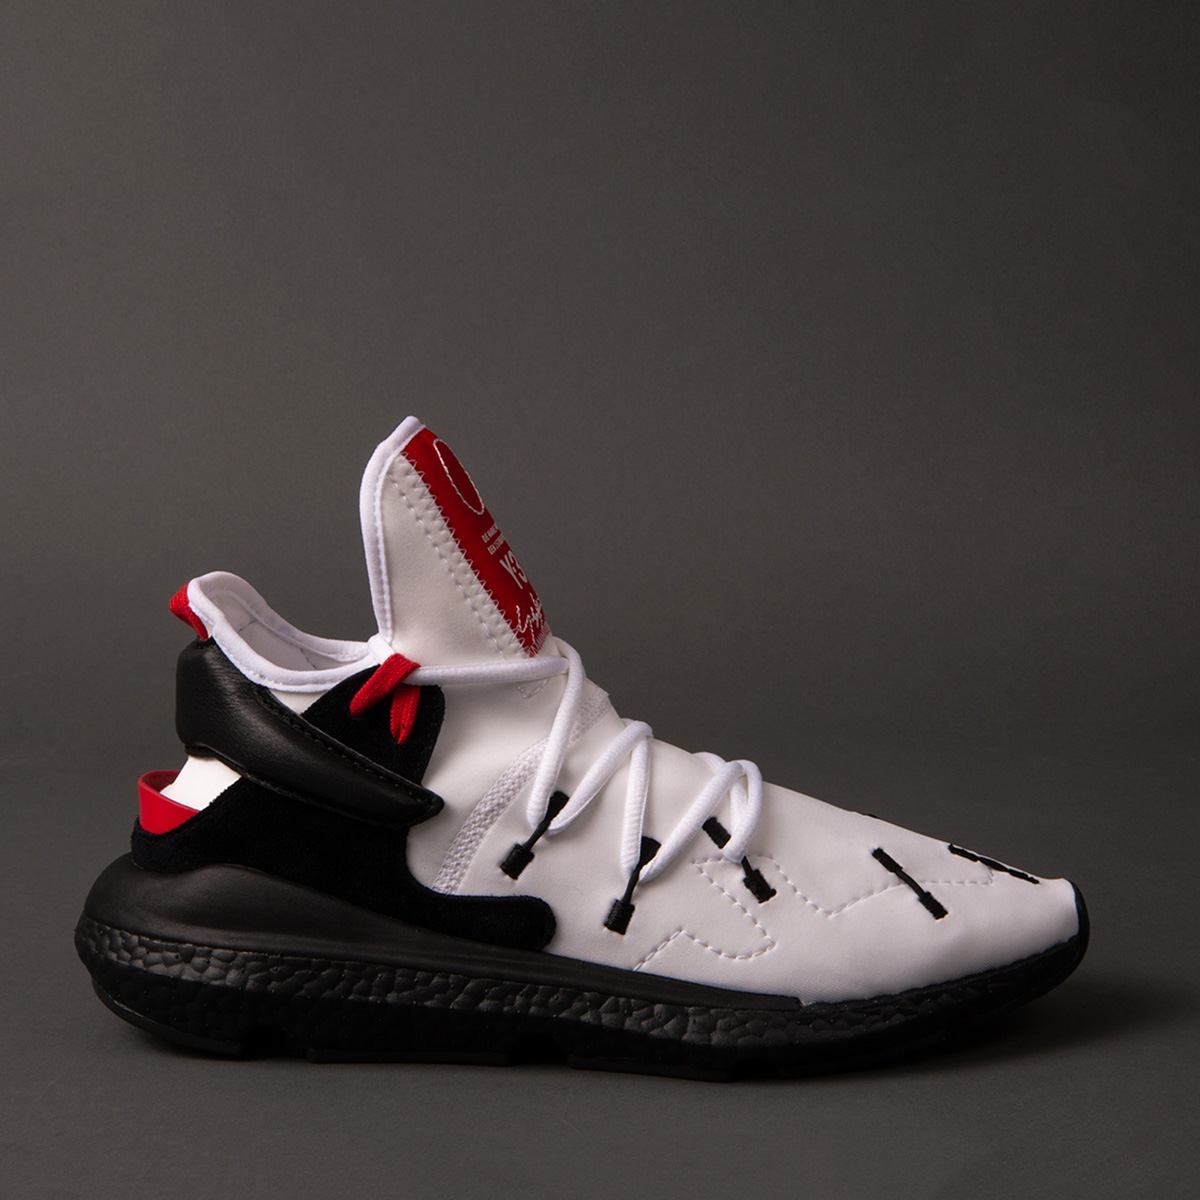 be141f31875d5 Blog Image for Introducing - Y-3 Kusari II